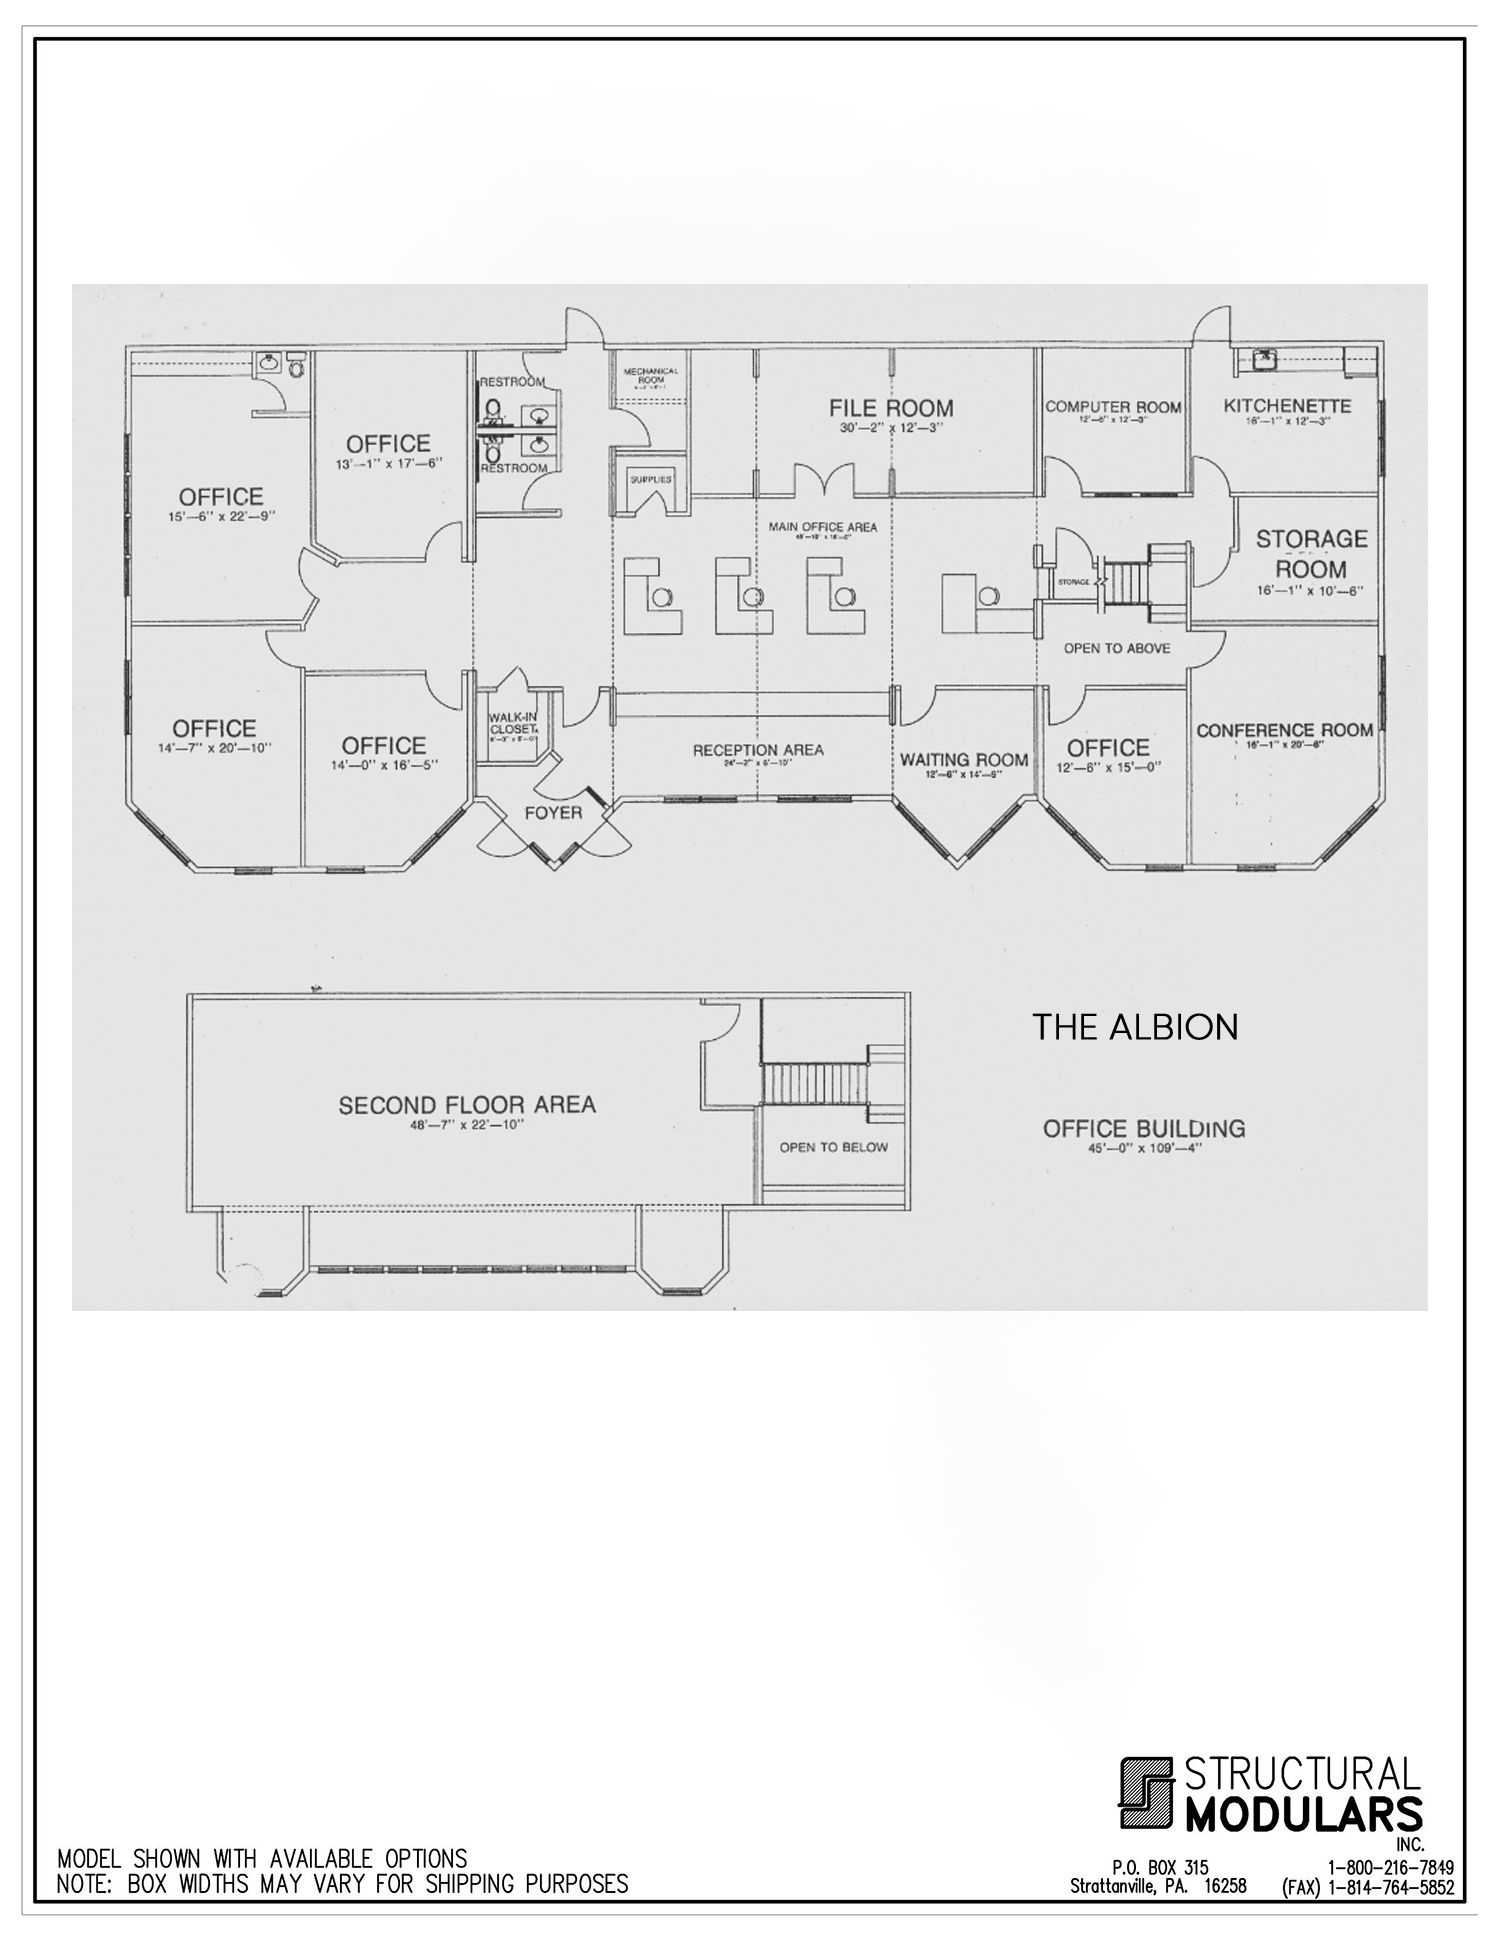 The Albion Floor Plans